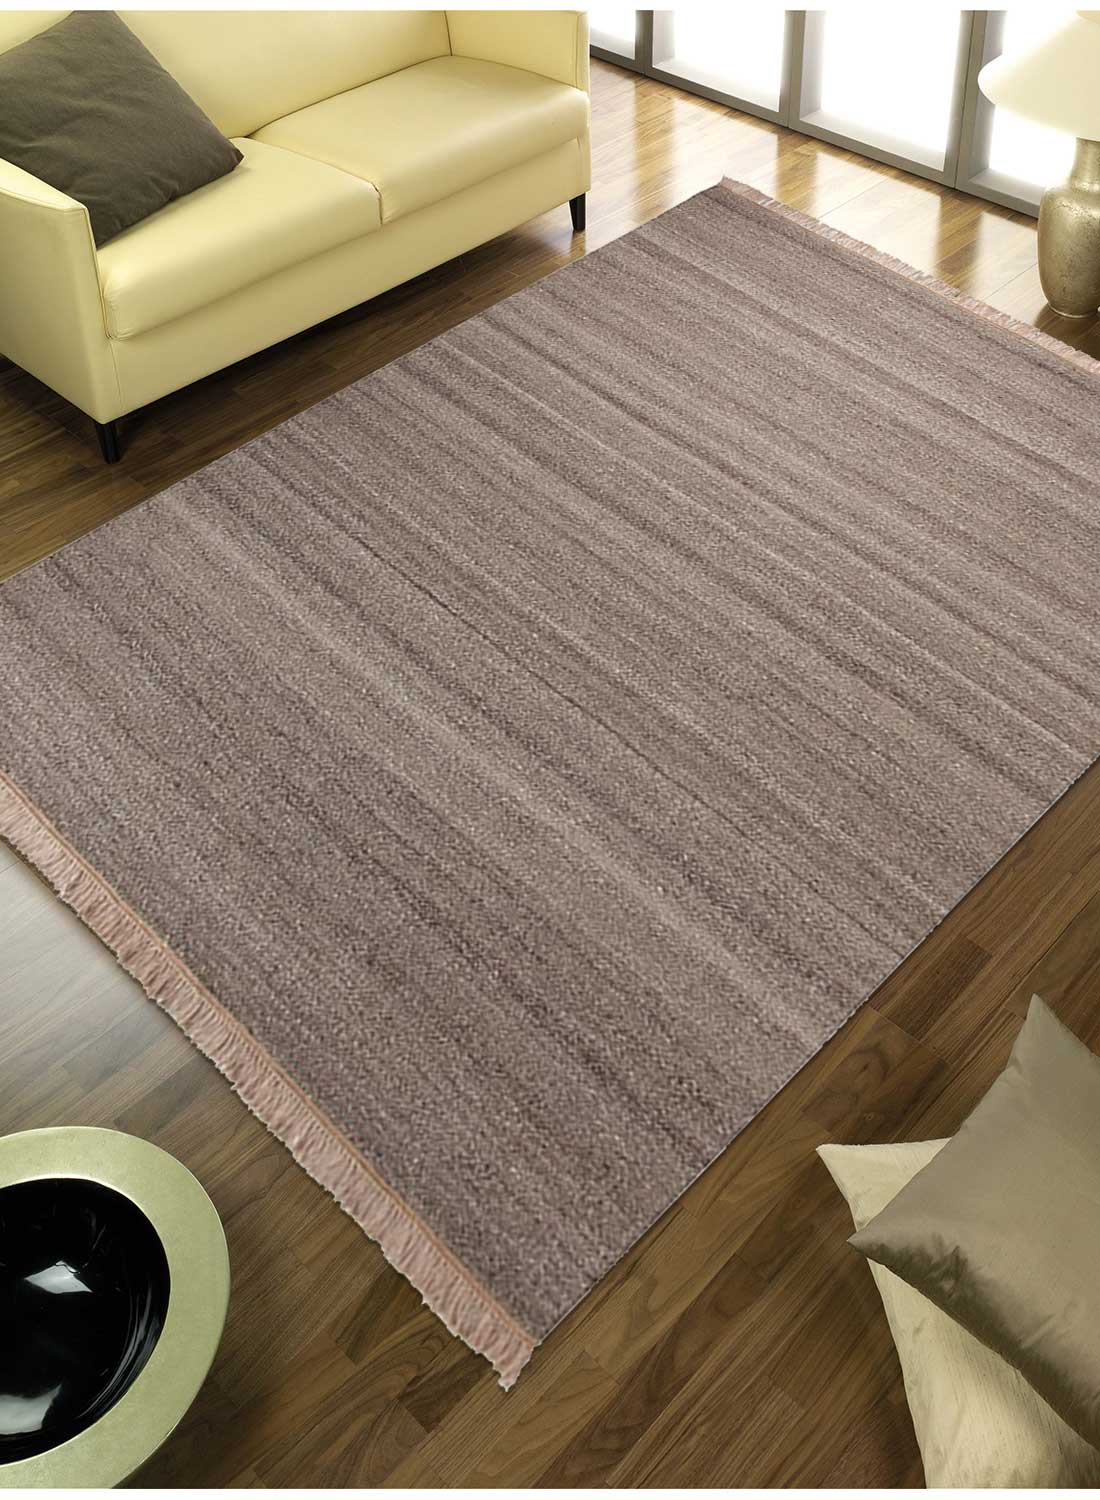 tapis descente de lit blurred tapis naturel par esprit ebay. Black Bedroom Furniture Sets. Home Design Ideas